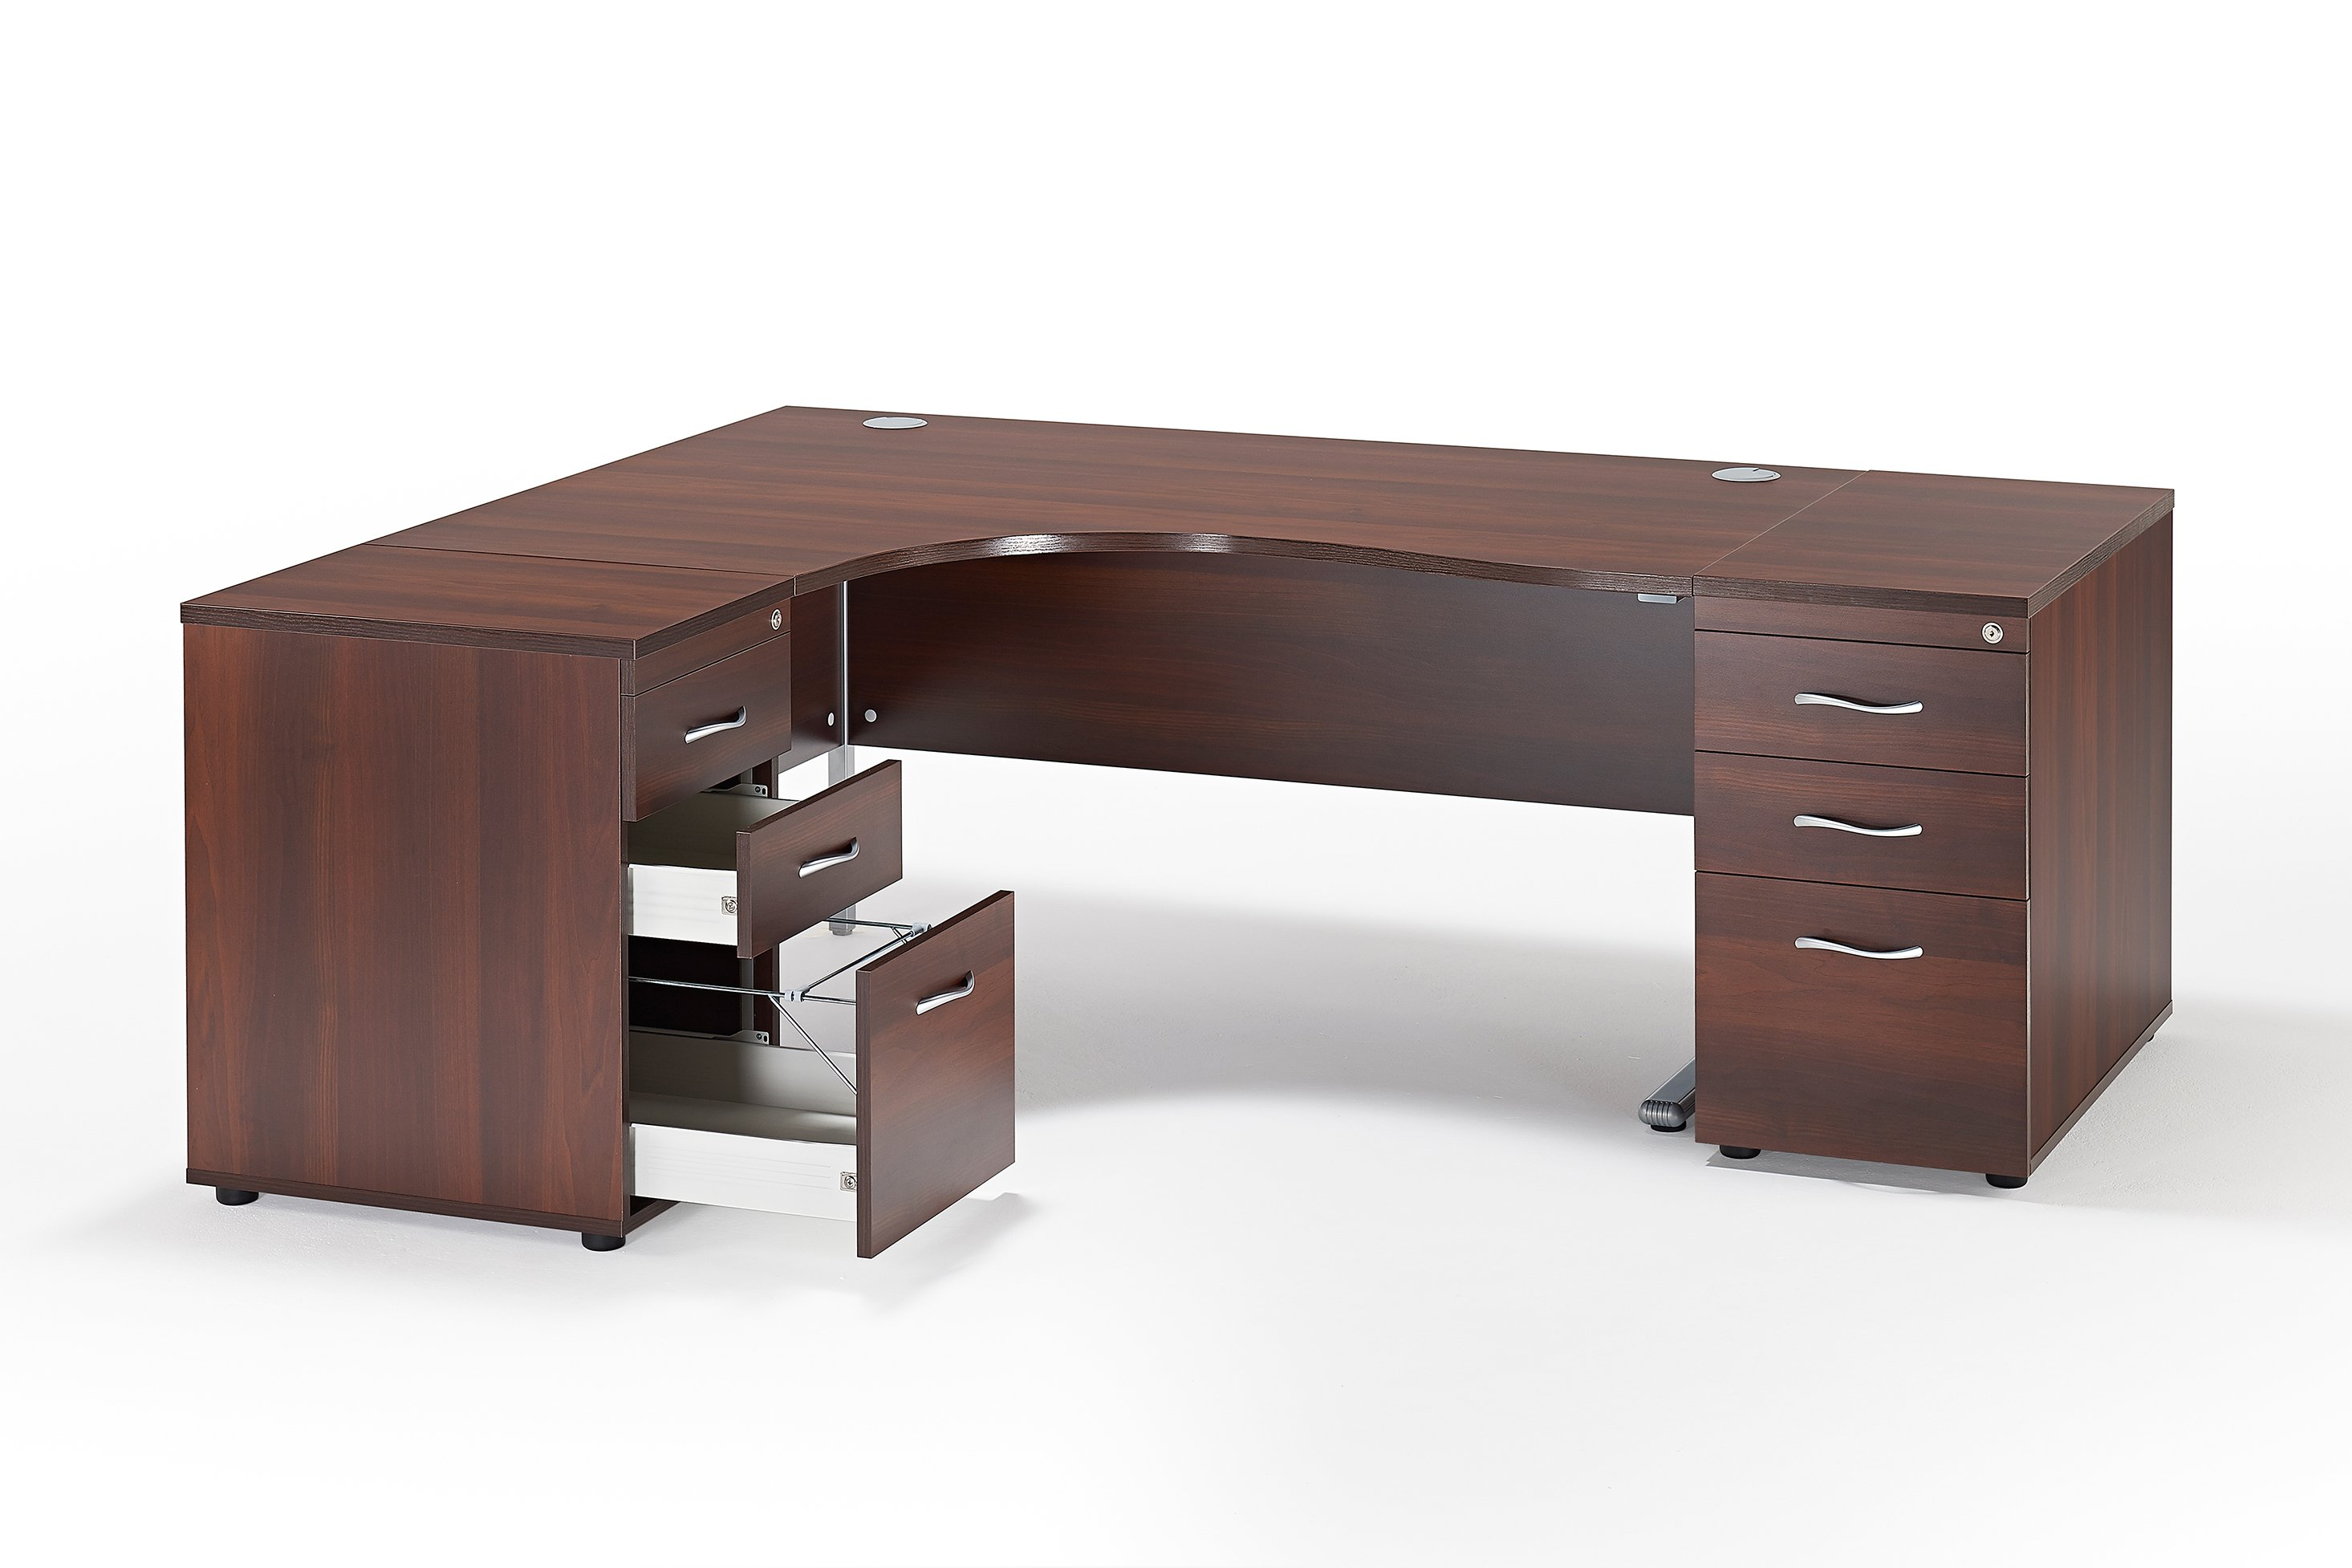 Next Day Curved Walnut Cantilever Office Desk And 2 Desk High Pedestals Bundle